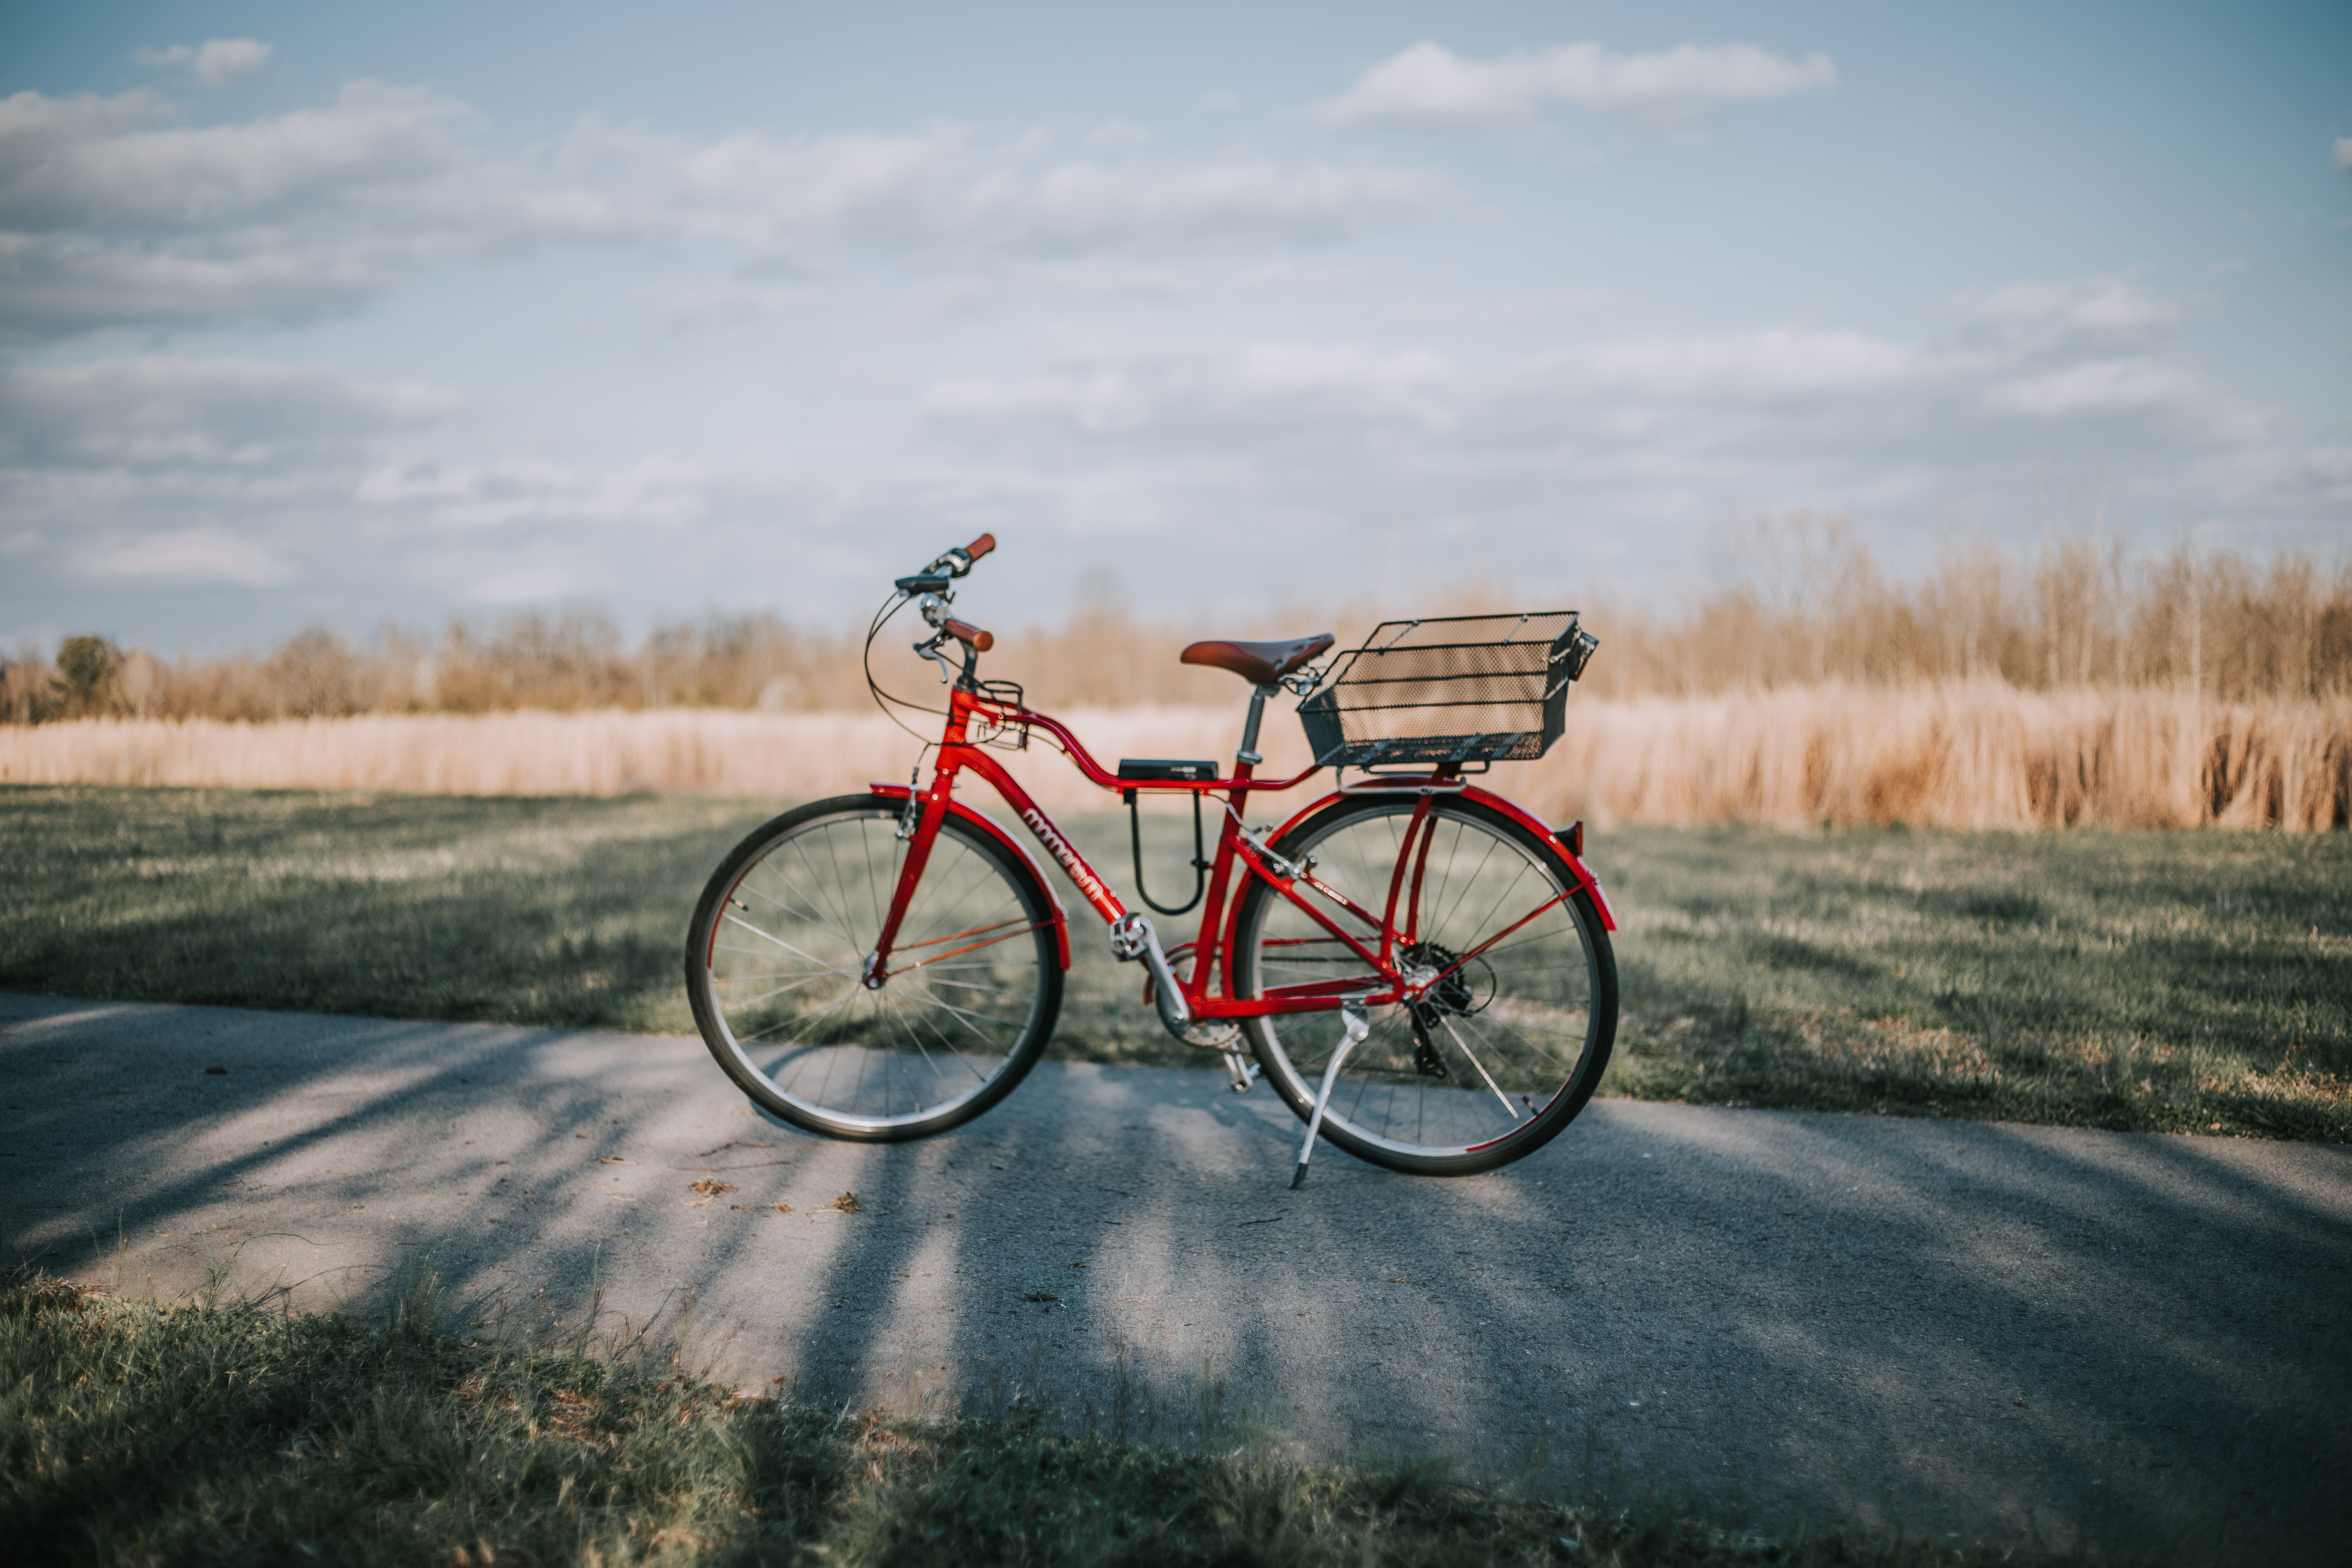 red commuter bike on road in between grass field during daytime